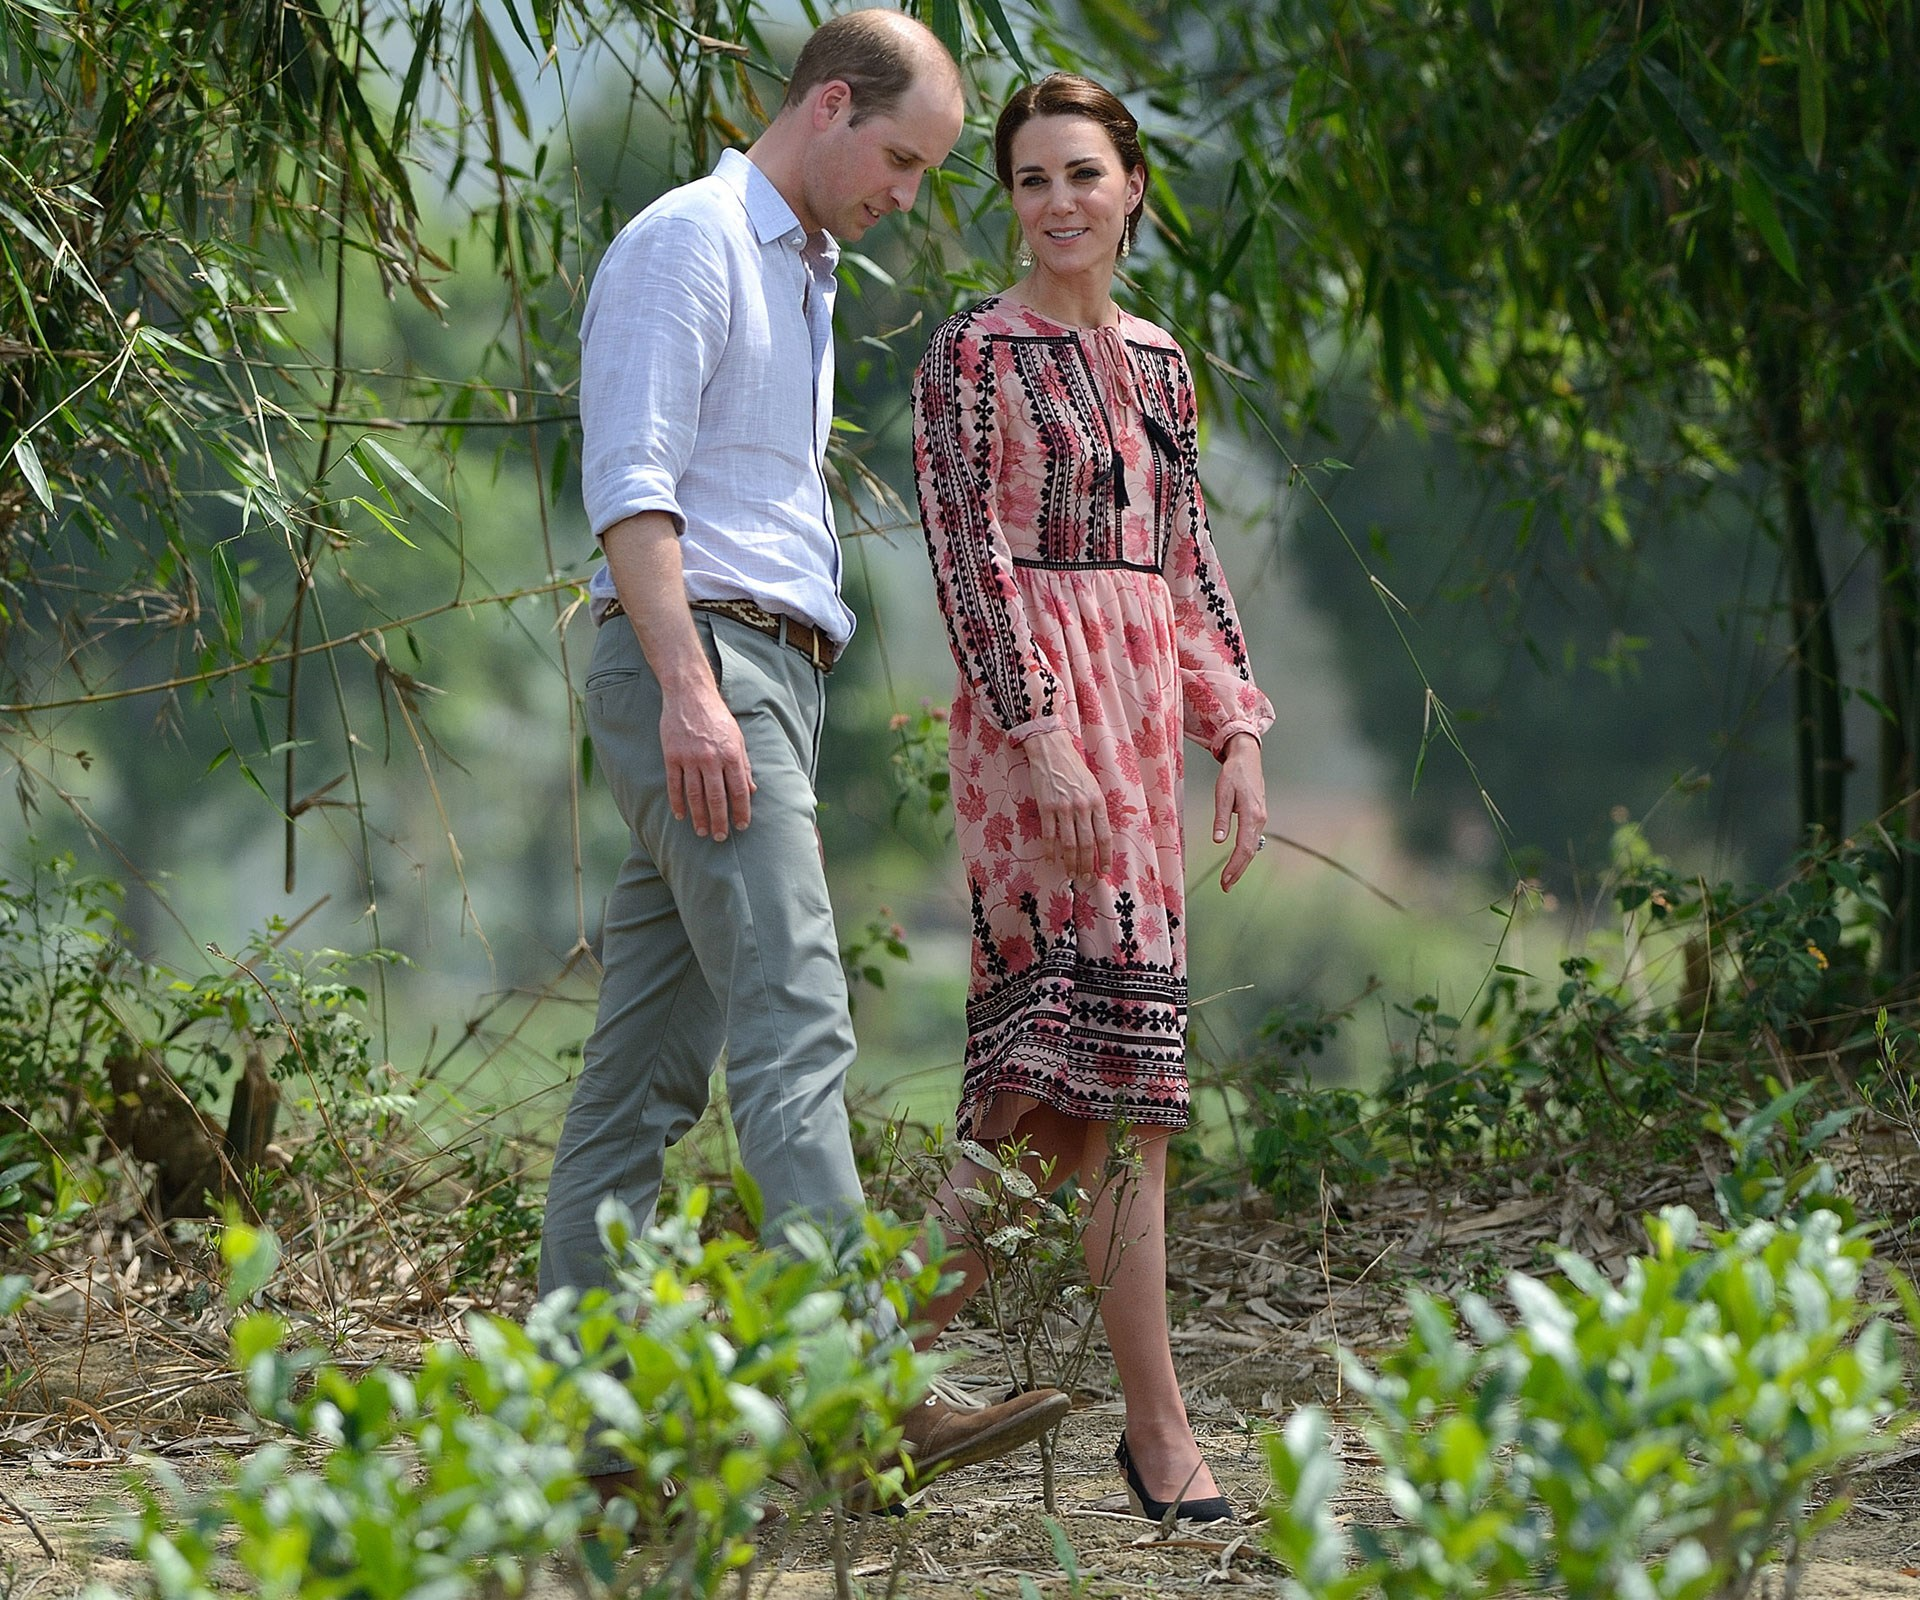 The Duke and Duchess take some time for a stroll together during a visit to the Kaziranga National Park in the Indian state of Assam.